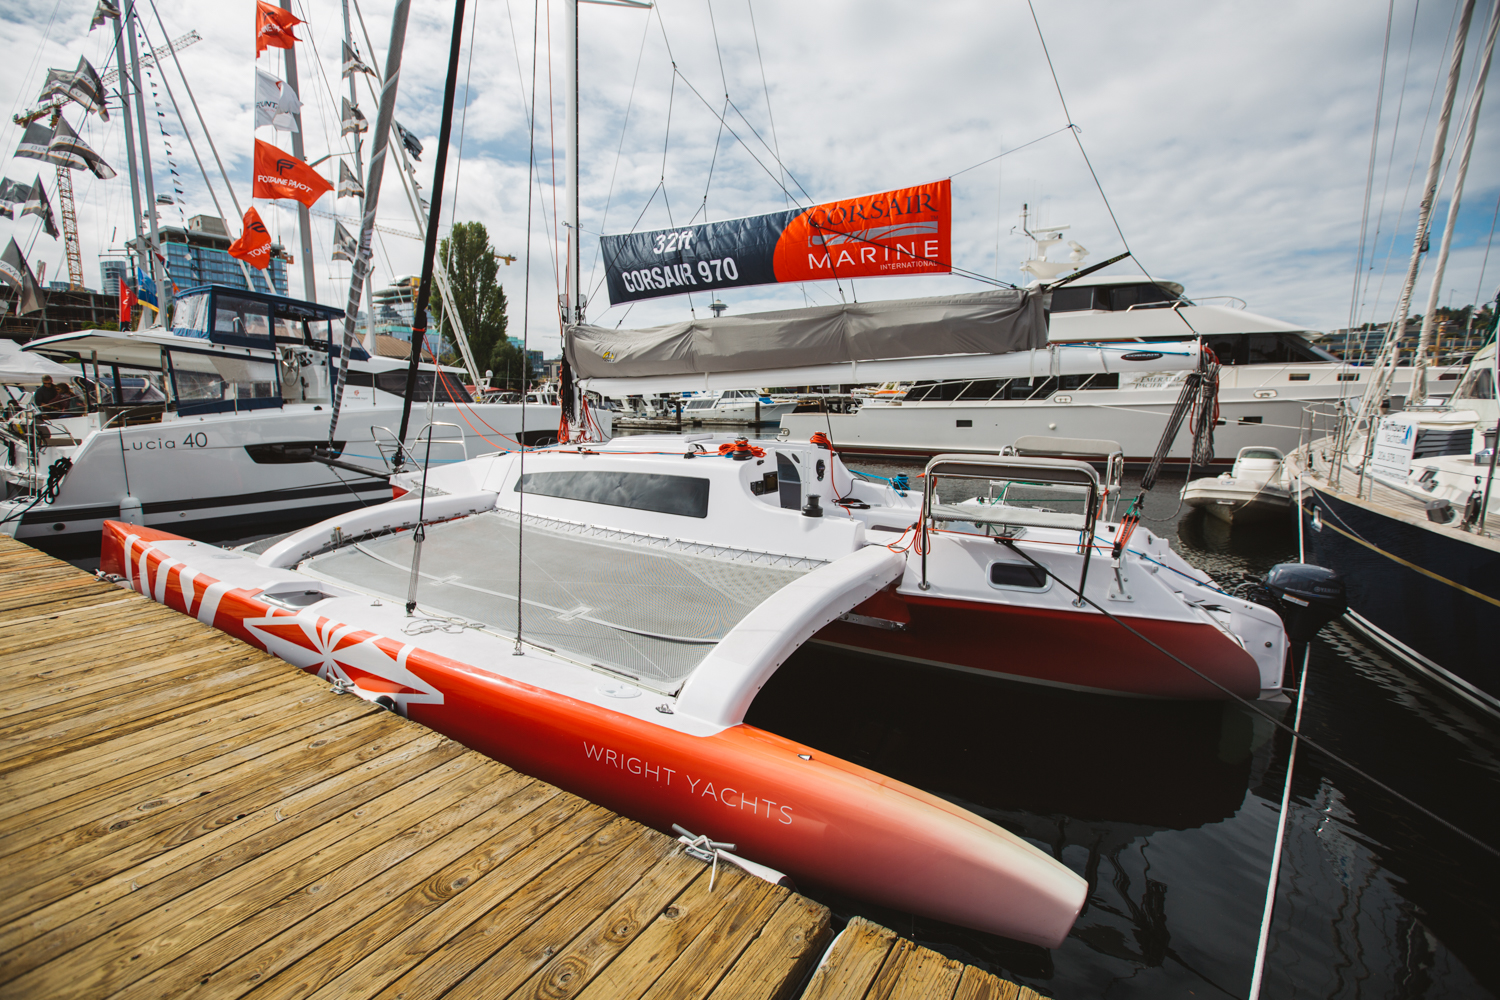 With a fleet that encompasses over 225 vessels, the Boats Afloat Show located at Lake Union highlights some of the finest boats to grace the open waters. This 32' 2018 Corsair 970 Sport boasts a unique package with a foldable mast built for road trailering, and the ability to be at home racing, cruising, and passagemaking. Coming in at $258,000, this trimaran allows you the liberty of spending a weekend with the family, while also exceeding your sailing performance expectations. (Image: Ryan McBoyle / Seattle Refined)